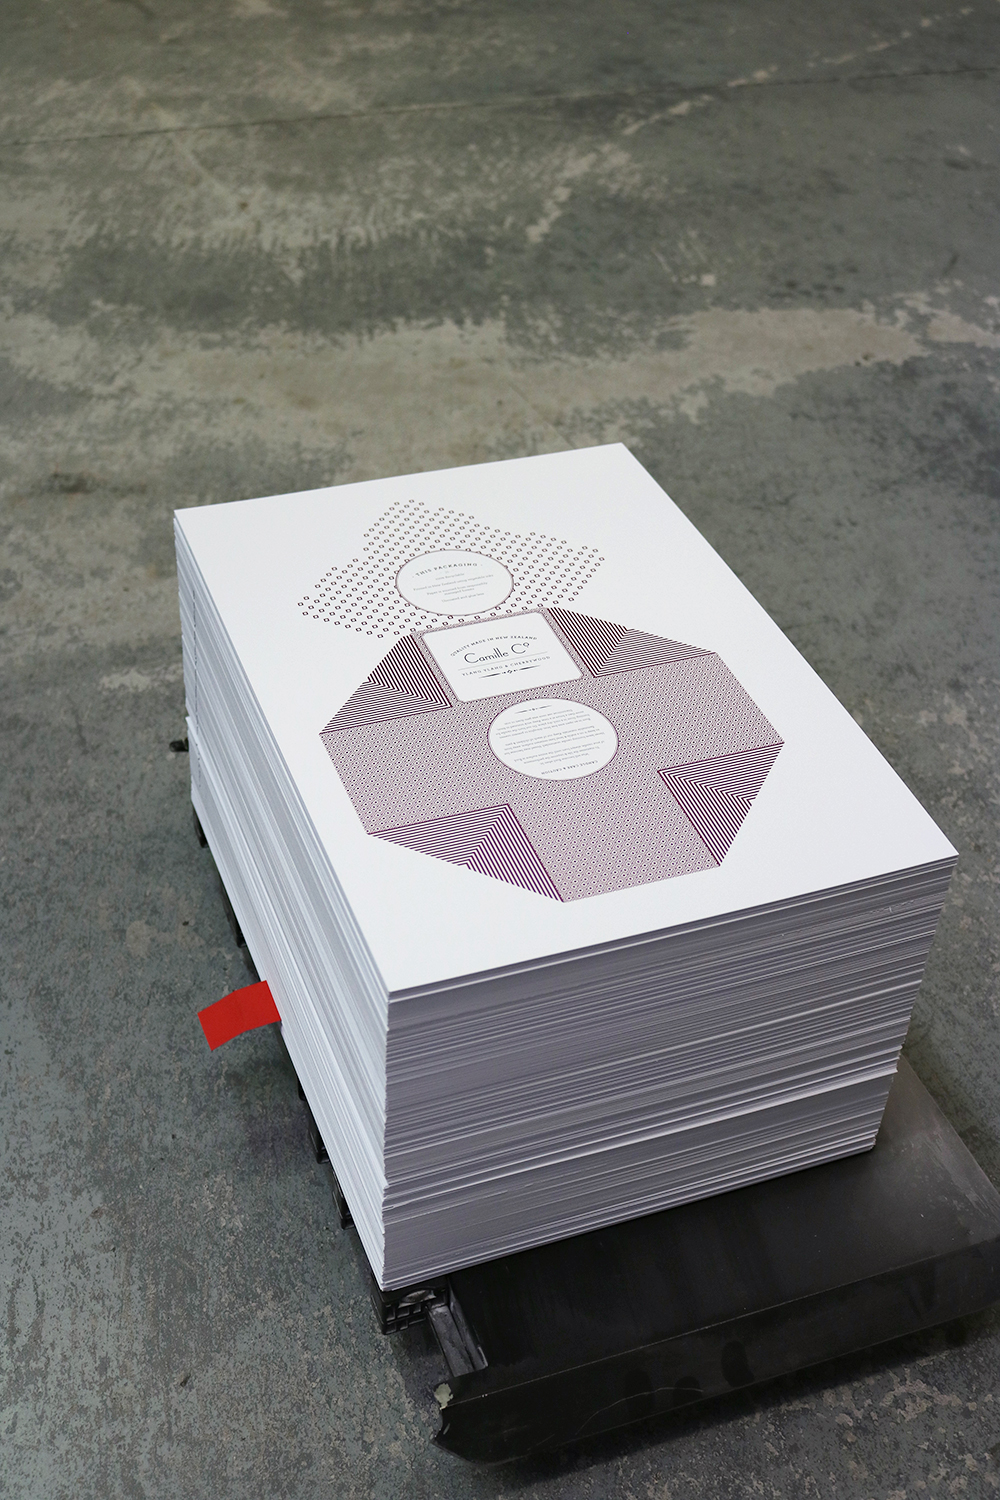 A stack of Camille Co. printing is now ready for die-cutting